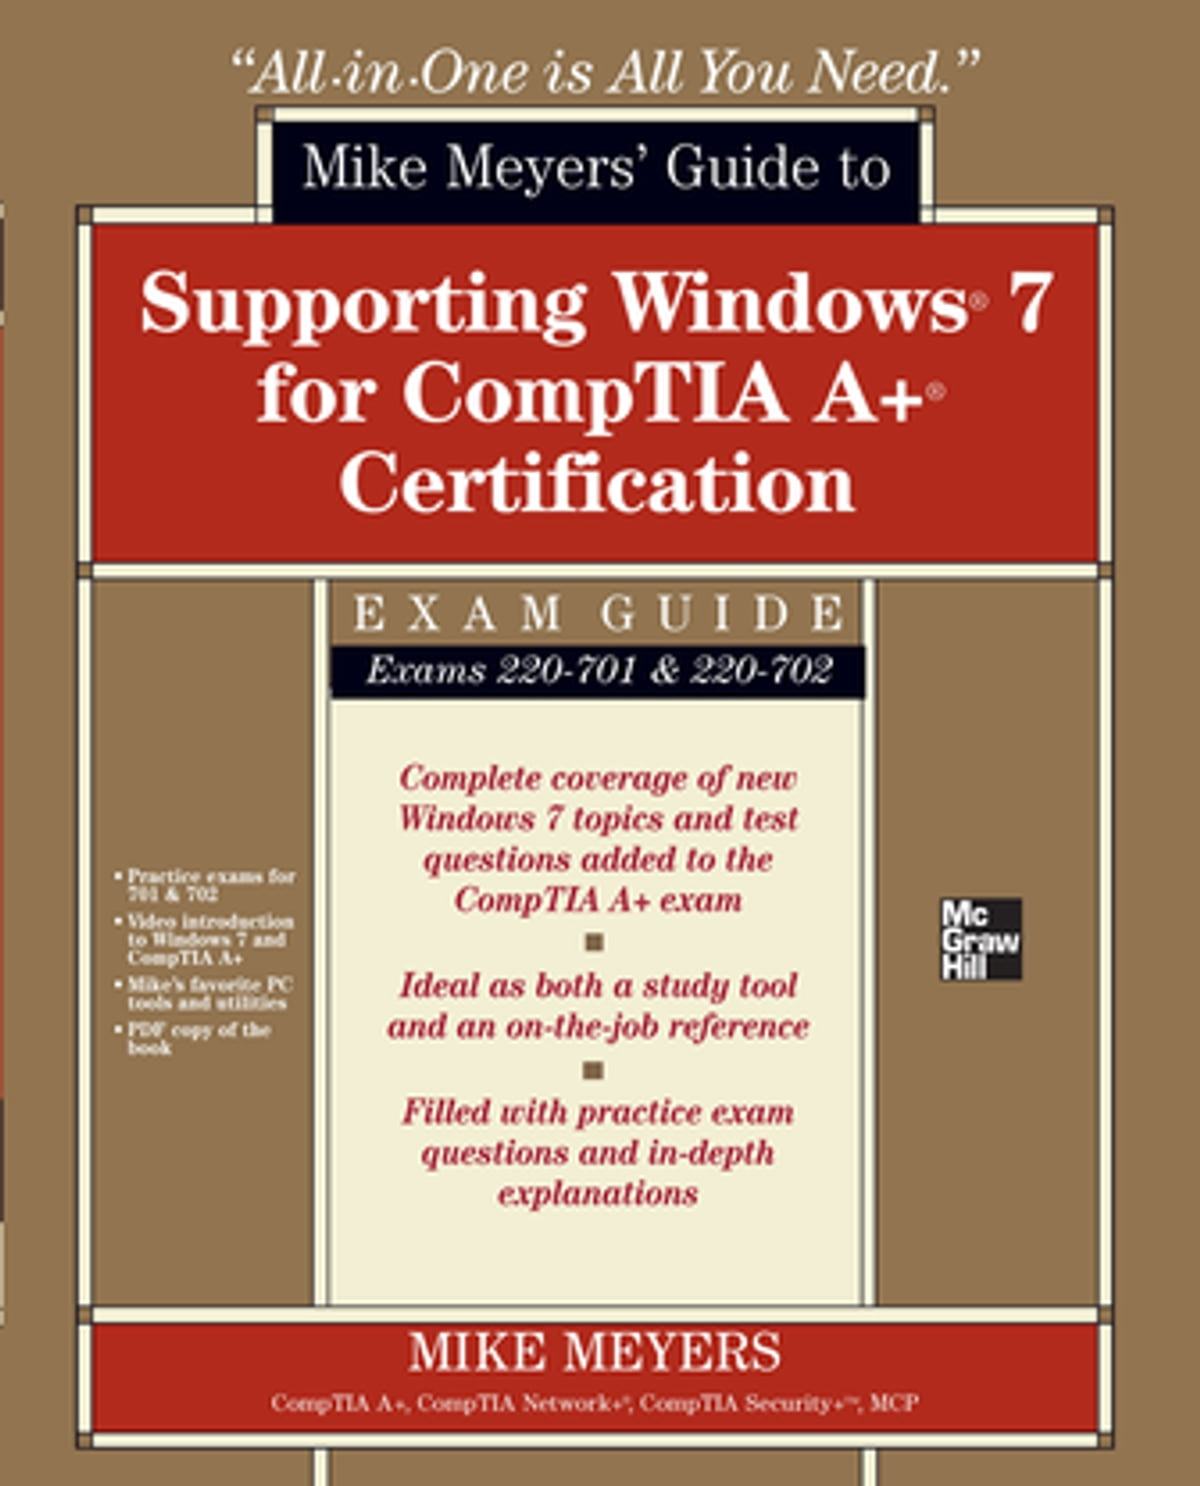 Mike Meyers Guide To Supporting Windows 7 For Comptia A